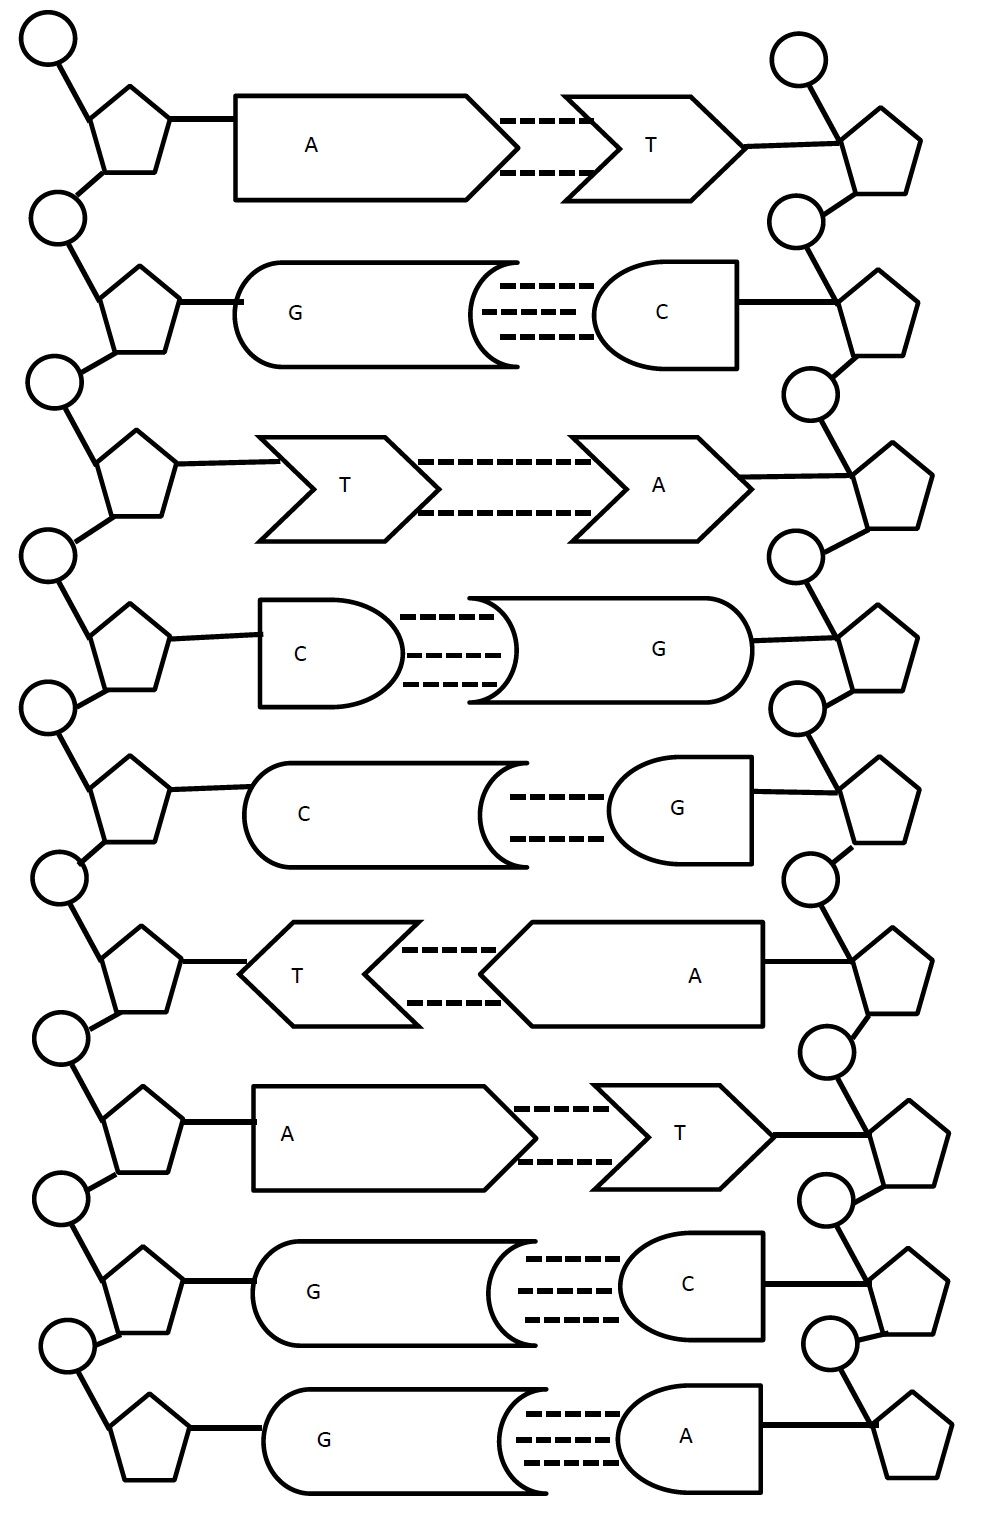 Dna Structure Worksheet Free Worksheets Library – Dna Model Worksheet